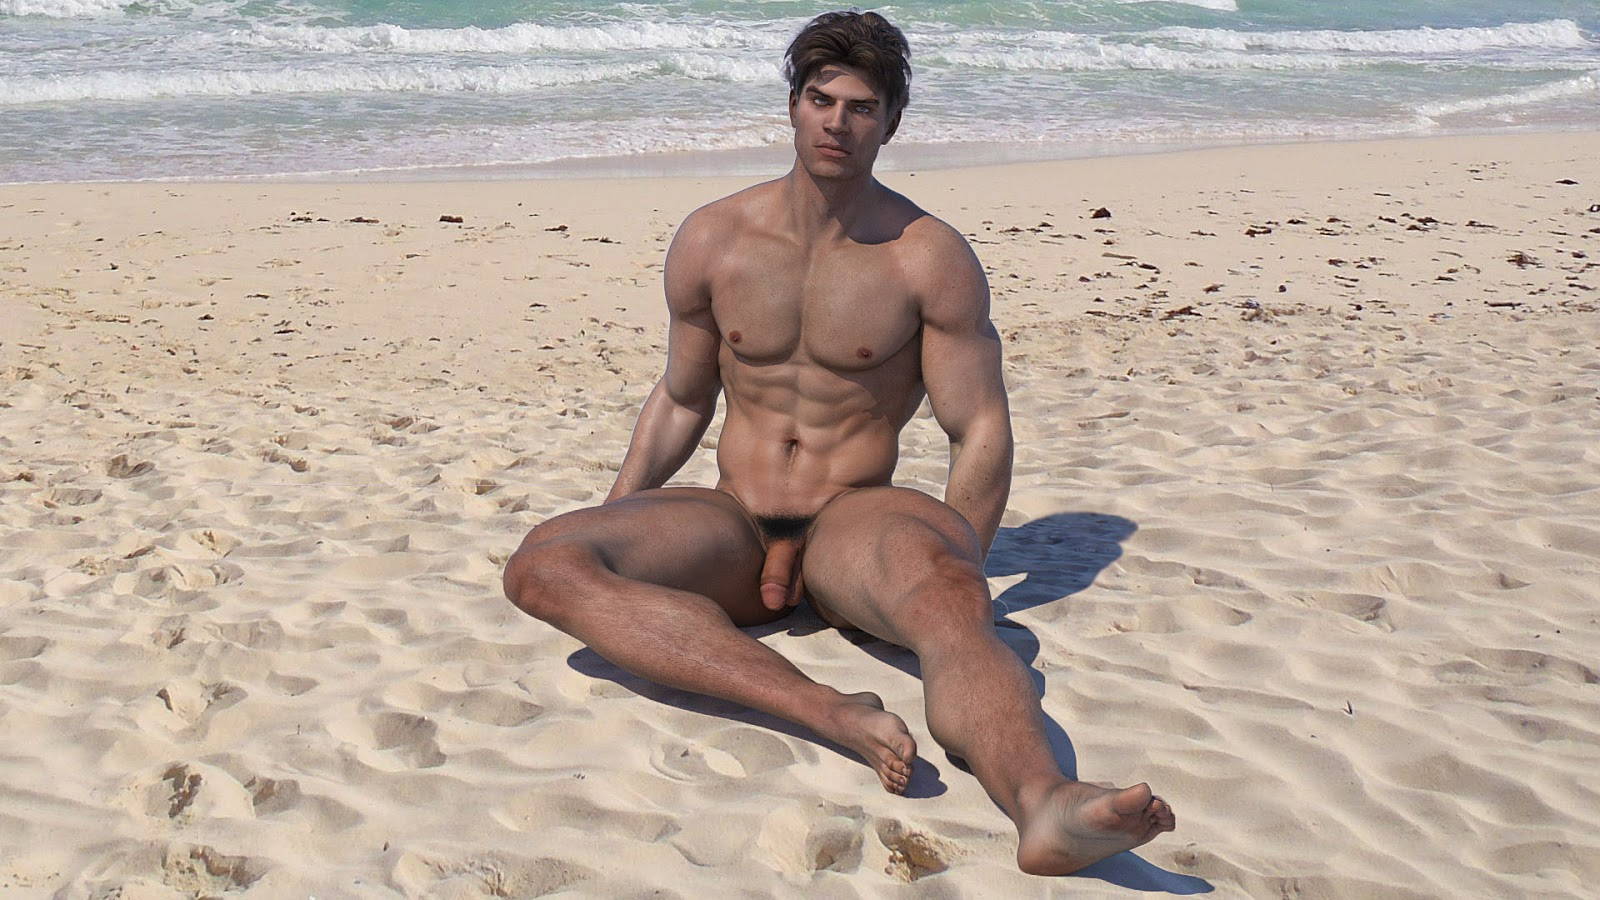 men at nude beach